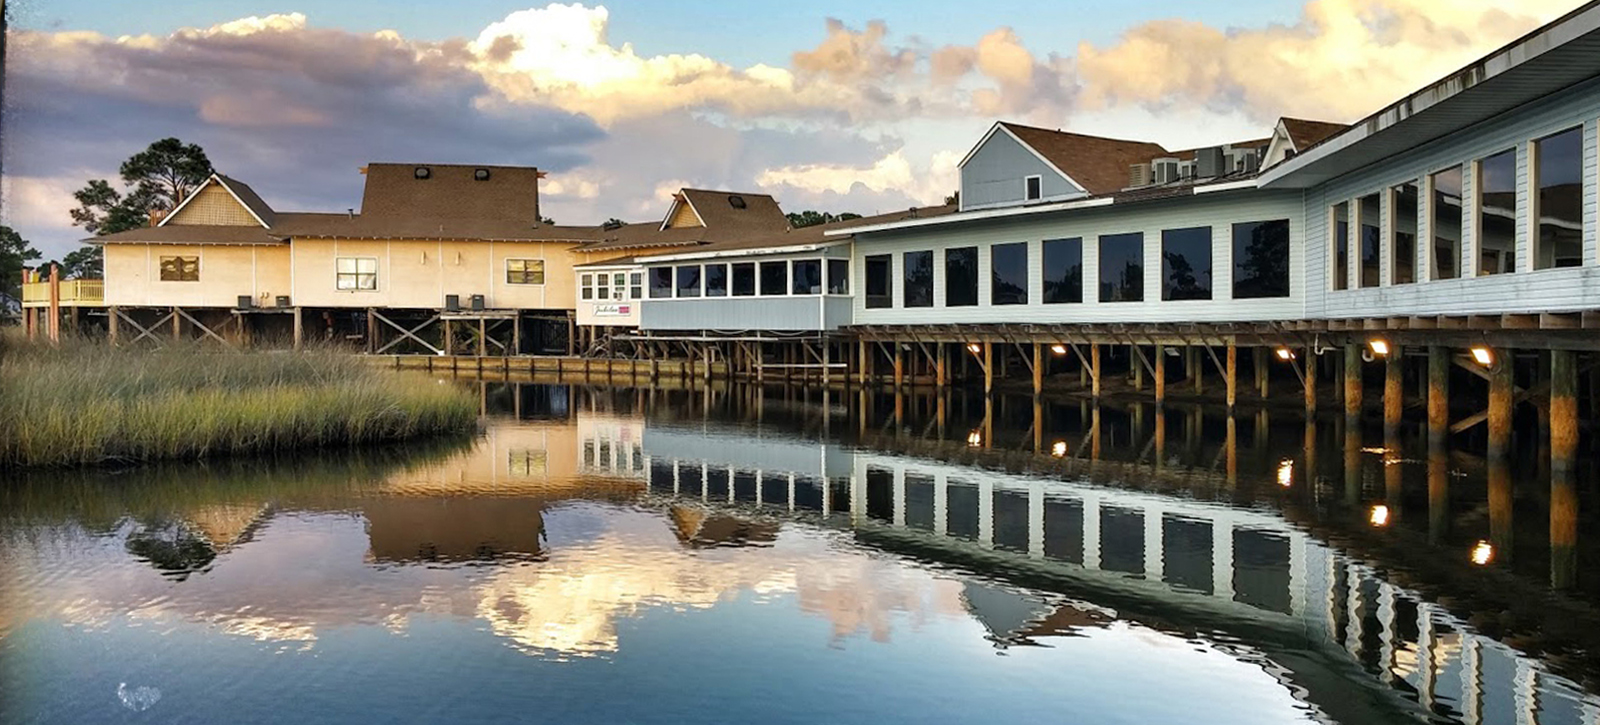 Gulf Shores Original Oyster House waterfront dining view